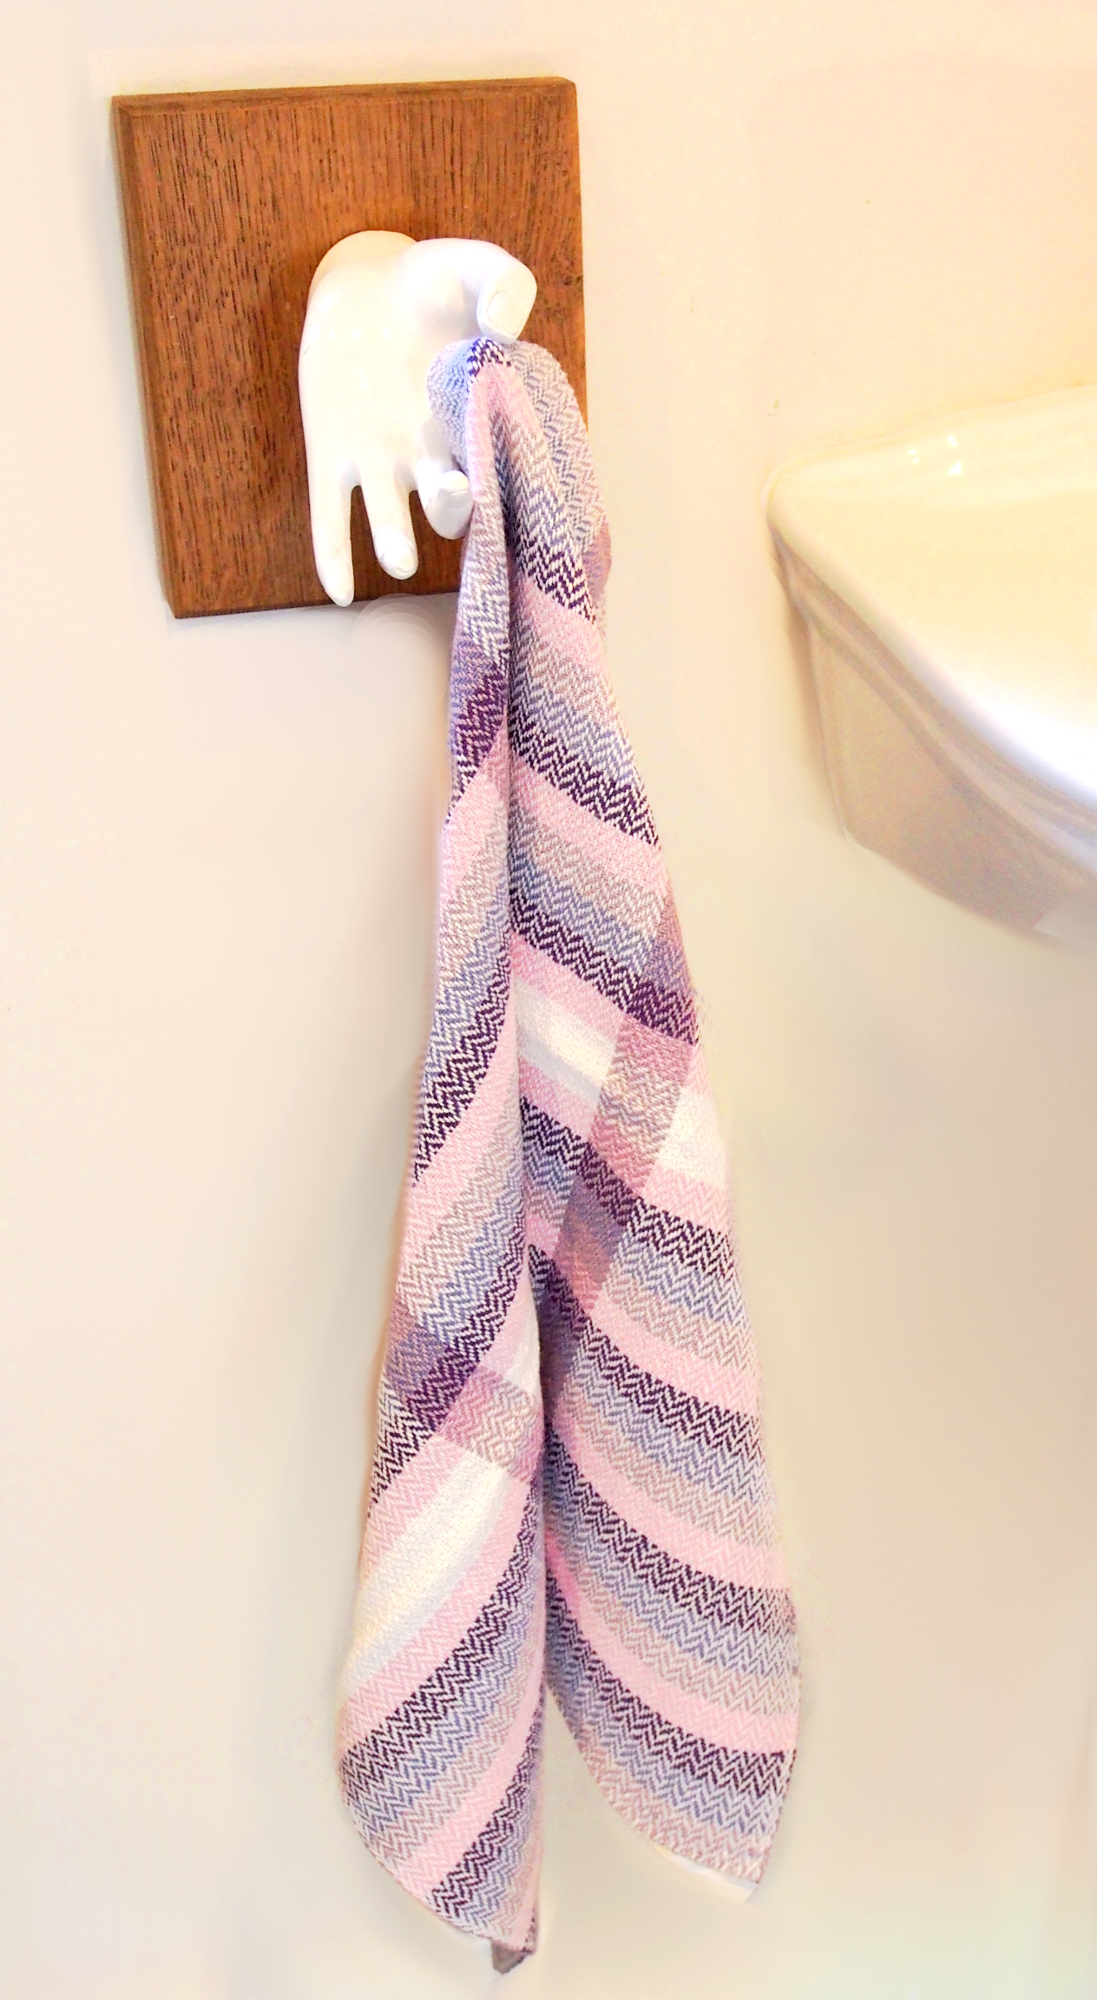 Blackberry hand towel